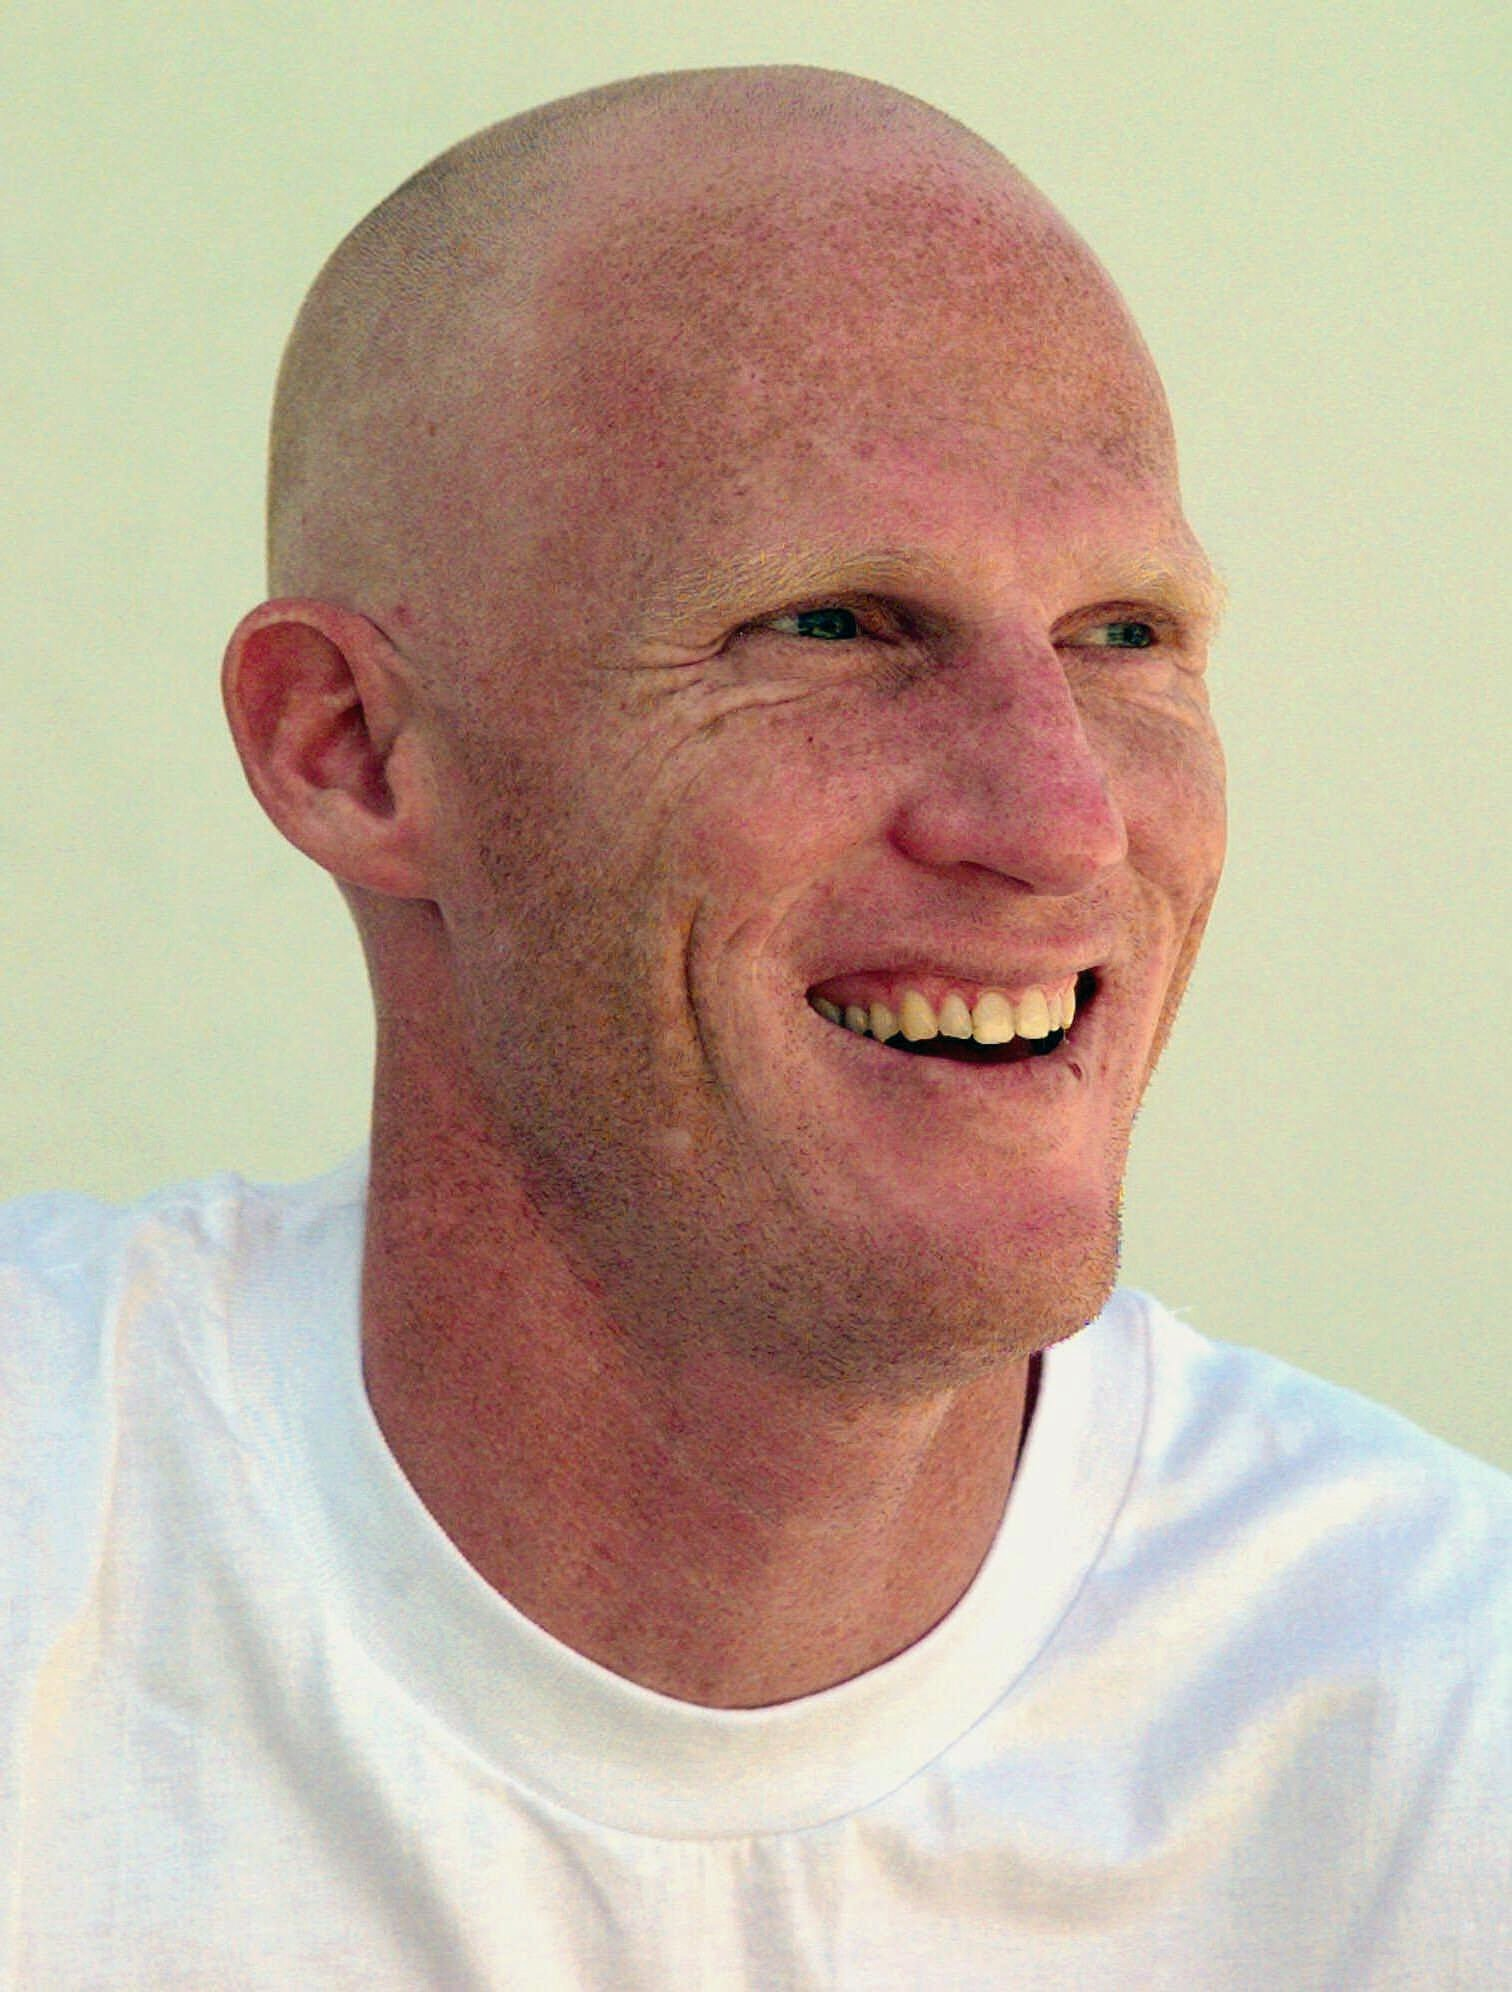 ADVANCE FOR WEEKEND EDITIONS, FEB. 10-11 - FILE - This Dec. 13, 2000 file photo shows Todd Marinovich after a Los Angeles Avengers team practice session in Culver City, Calif.   Right from the first time, that very first time heroin entered Marinovich's b